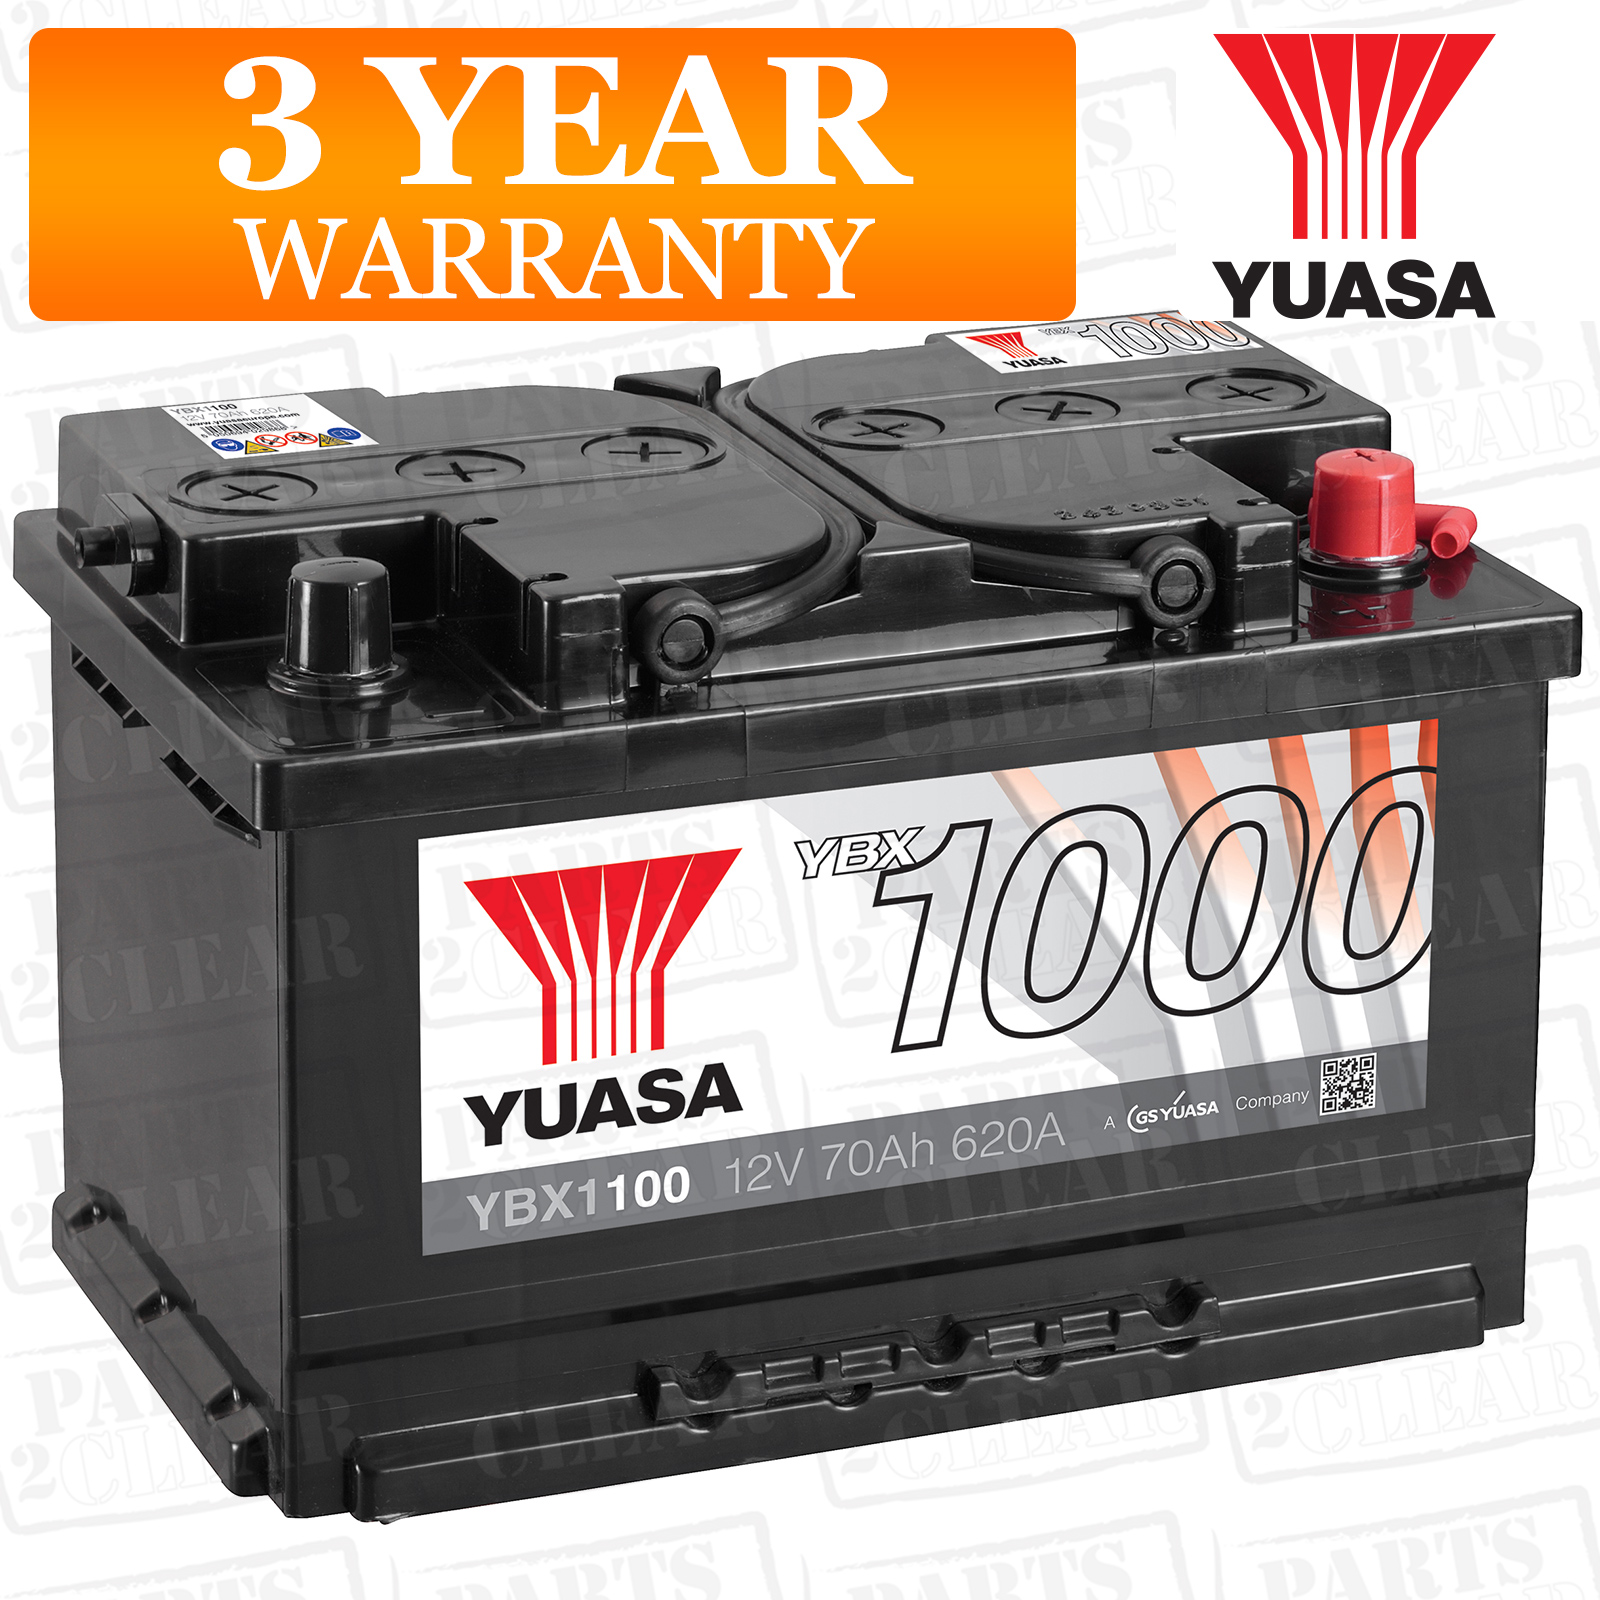 Yuasa Car Battery Calcium Open Vent 620cca 70ah T1 For Ford Focus Mk1 2 0 St170